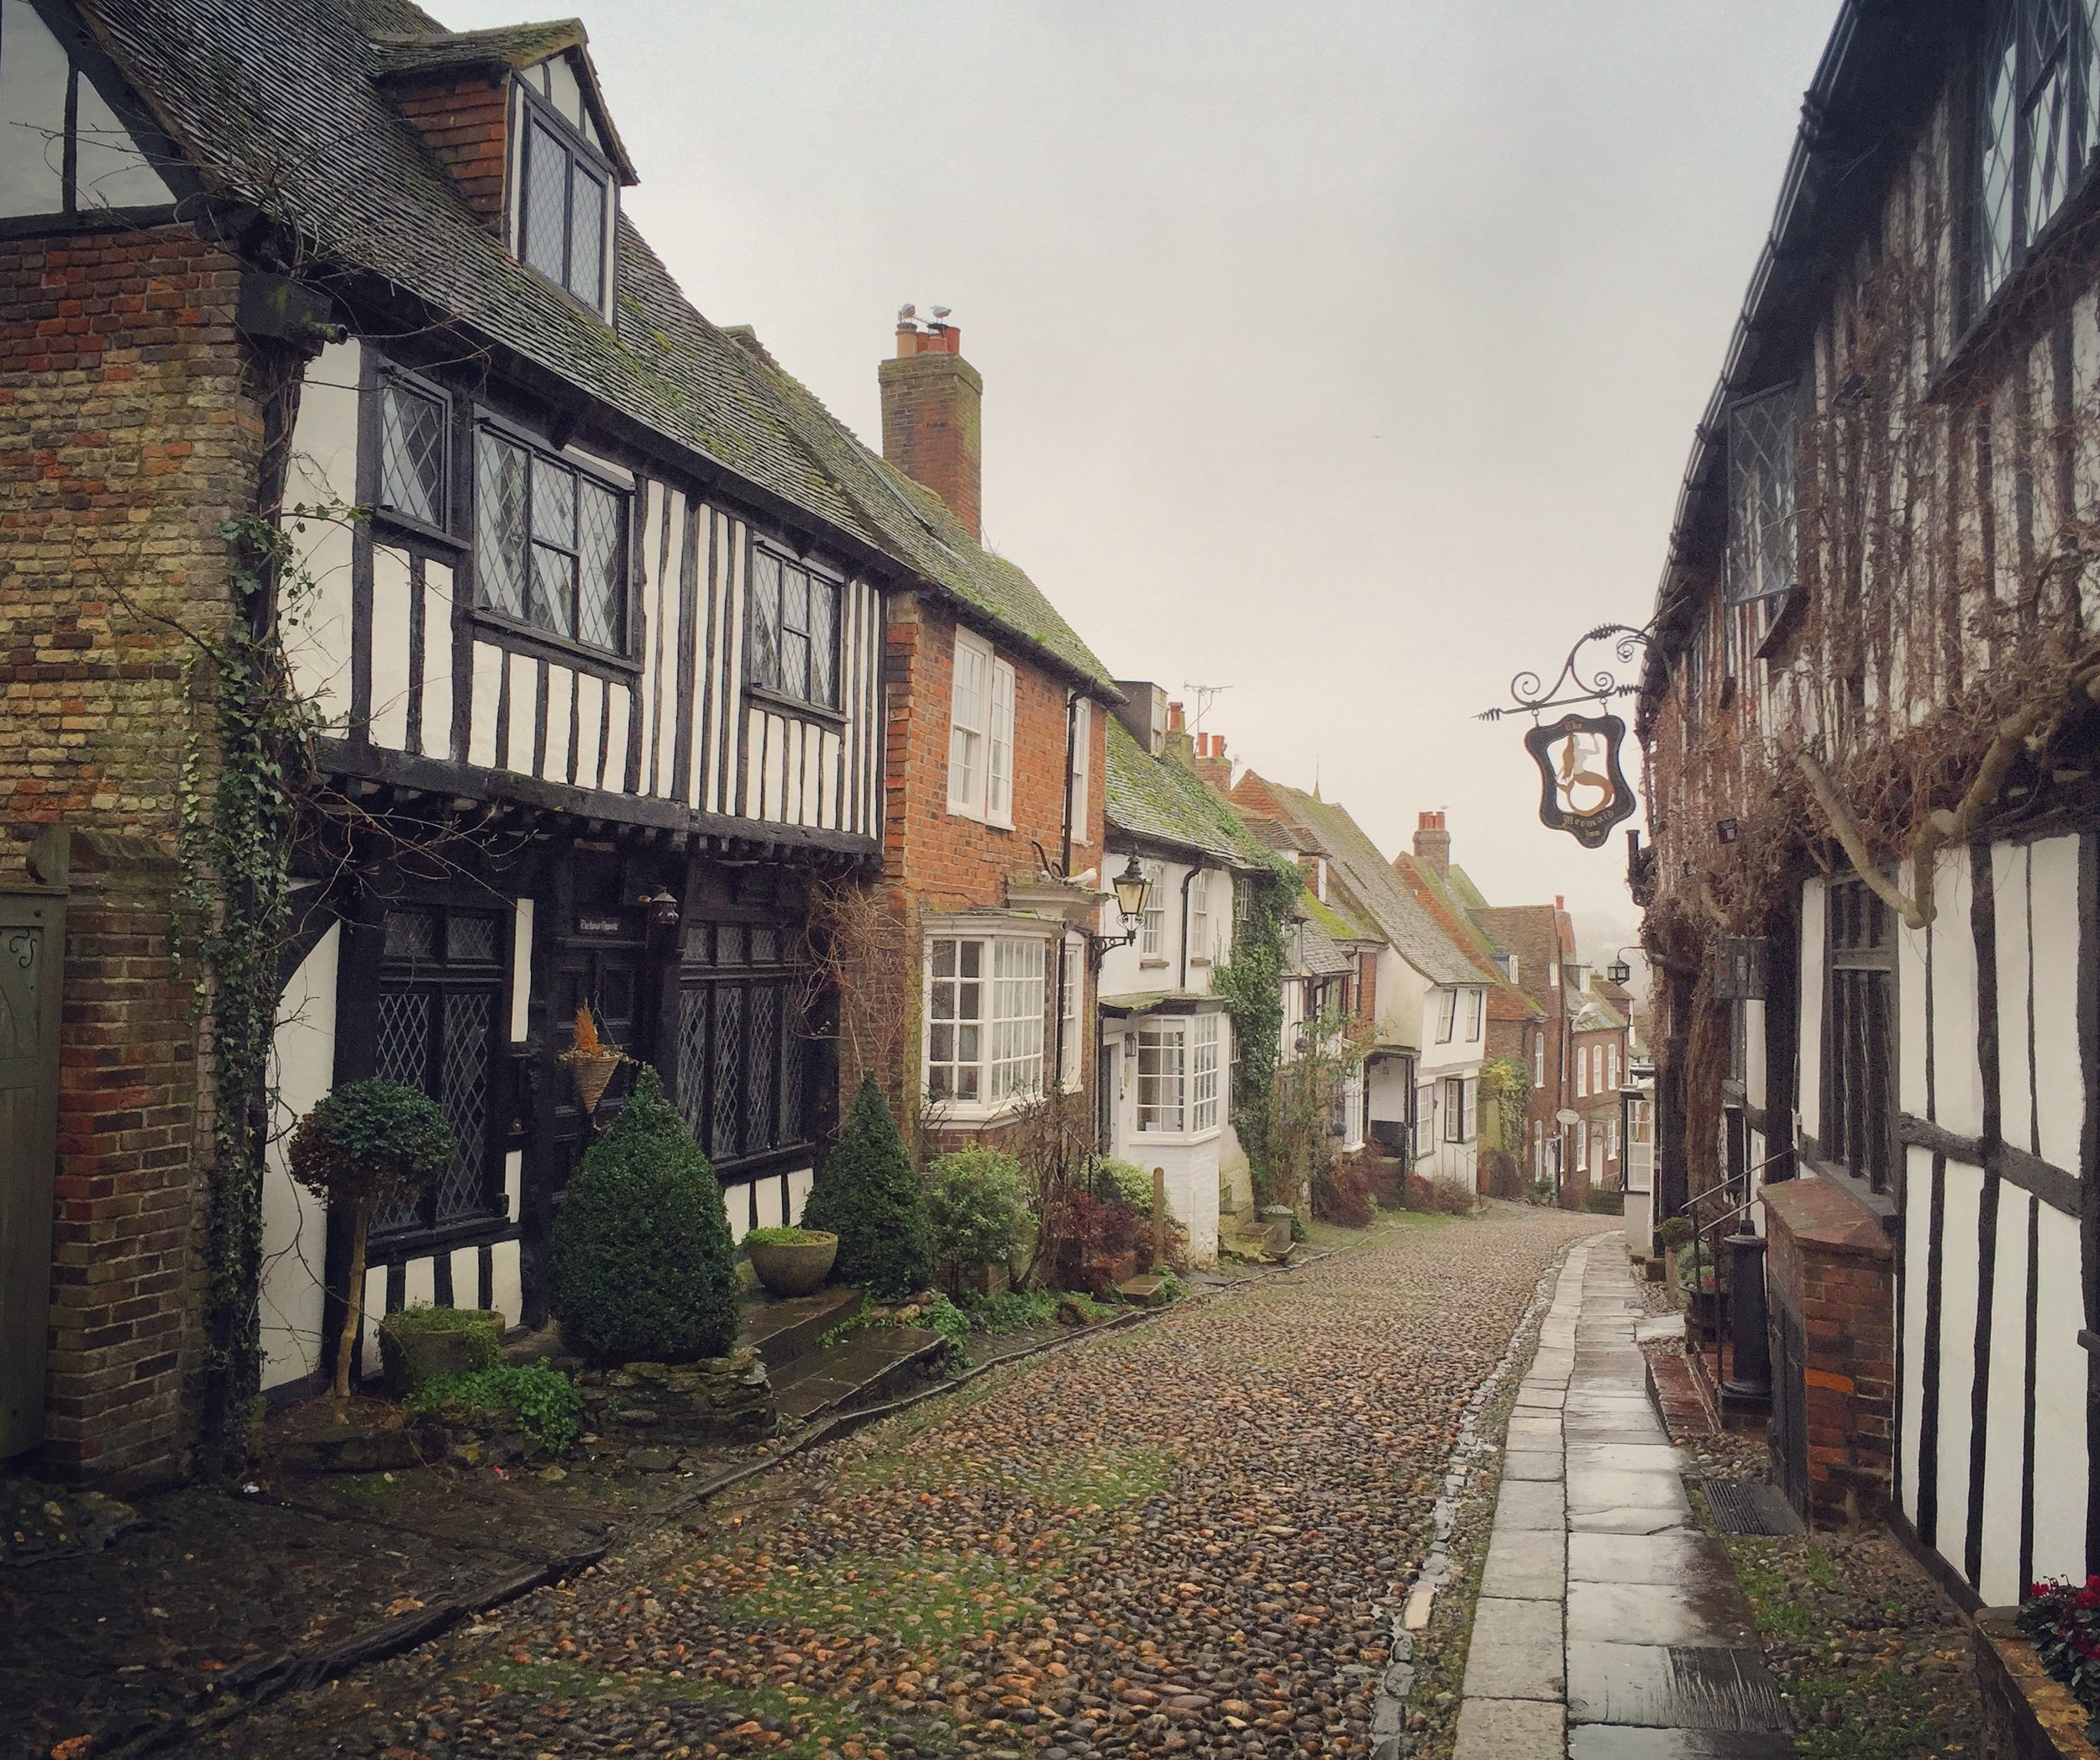 Rye is a fantastically charming little town.